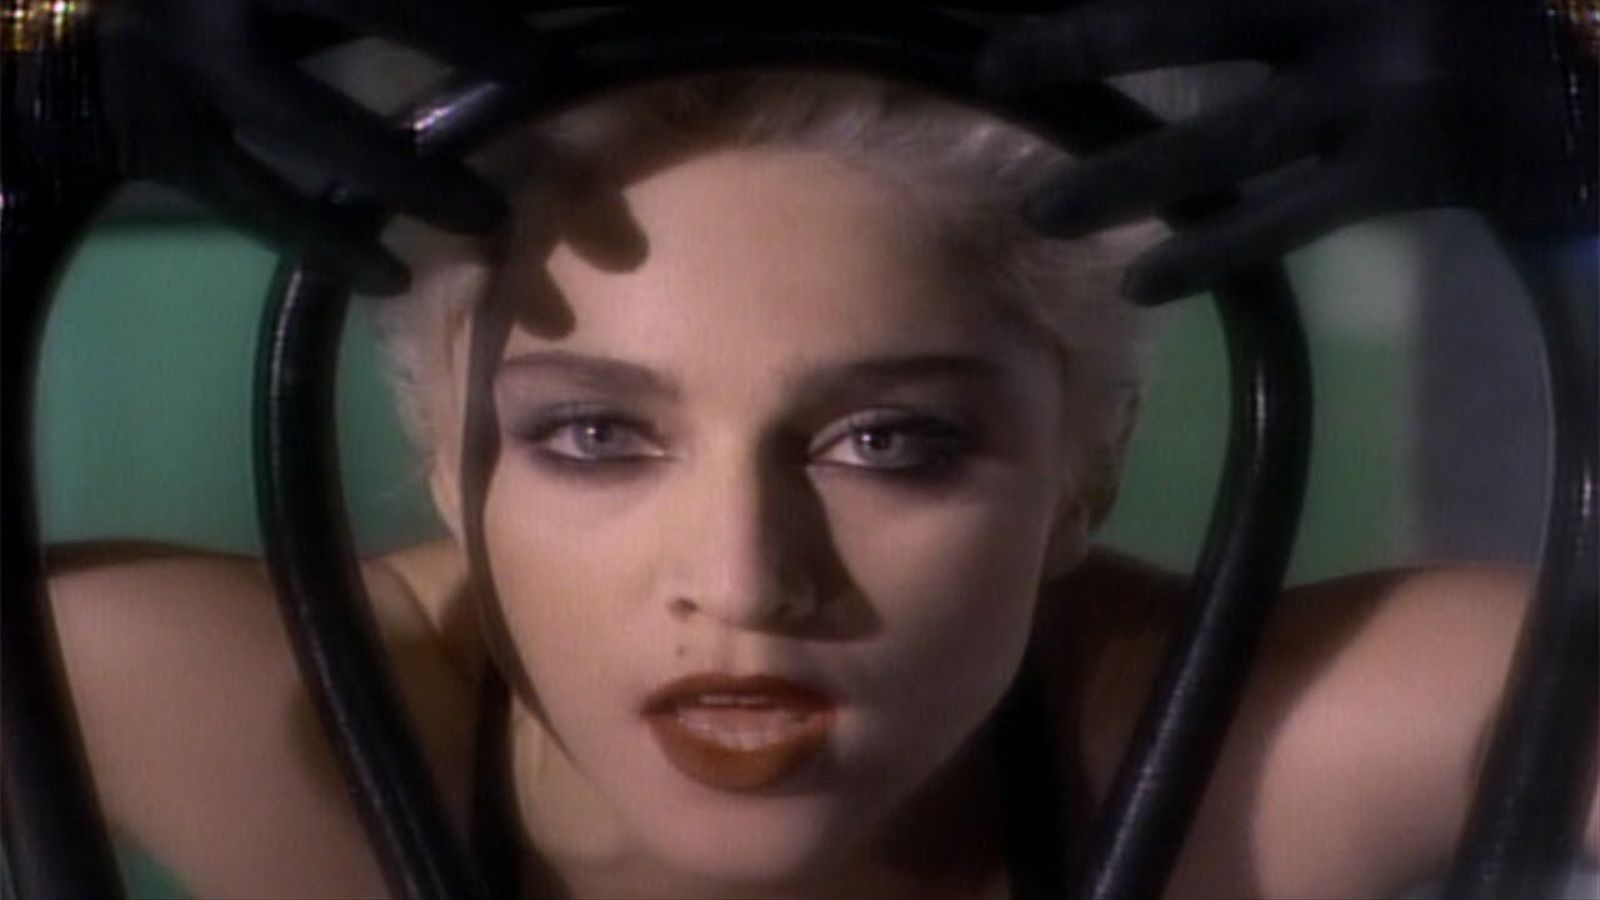 Videoclip del tema de Madonna 'Open your heart'